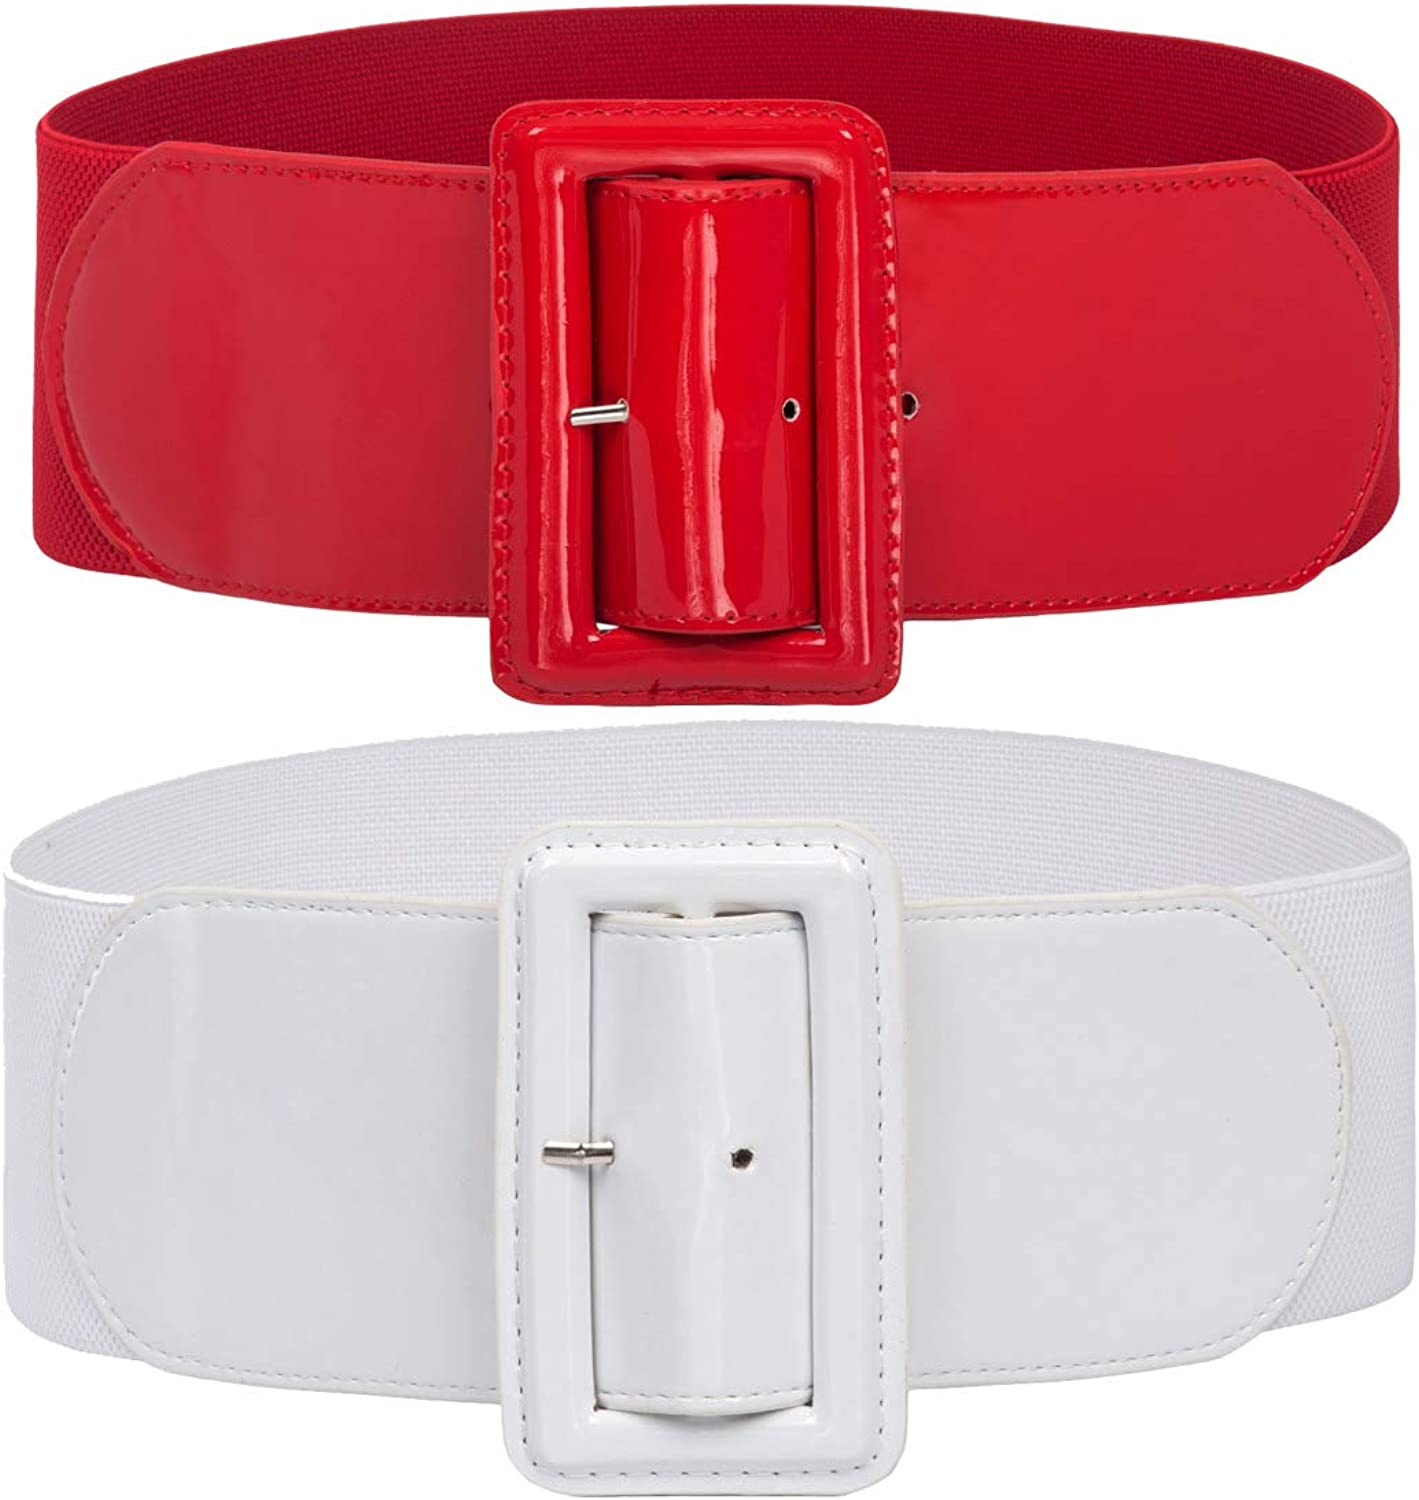 GRACE KARIN Women's Stretchy Belt 1950s 3 Inch Wide Elastic Belts at  Women's Clothing store